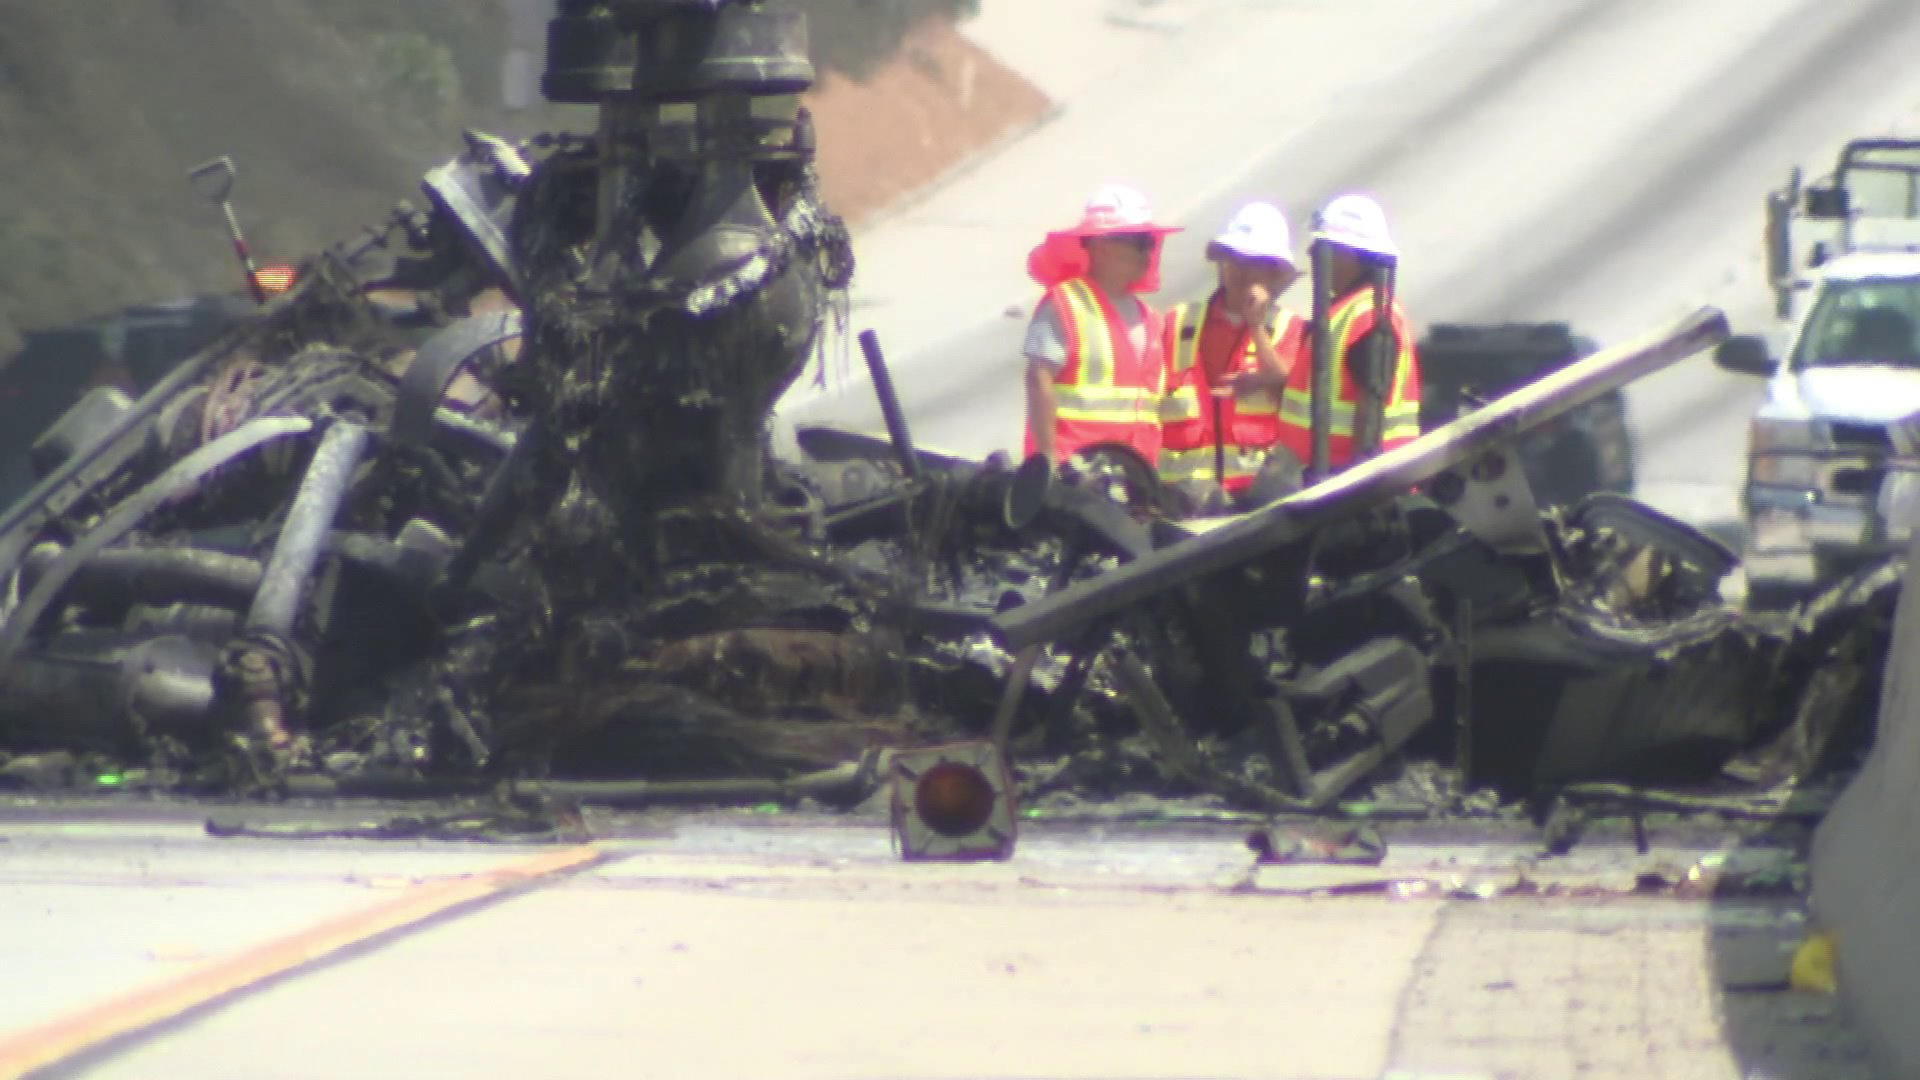 Authorities respond to a deadly tanker truck crash on the 105 Freeway in Hawthorne on Aug. 24, 2018. (Credit: KTLA)